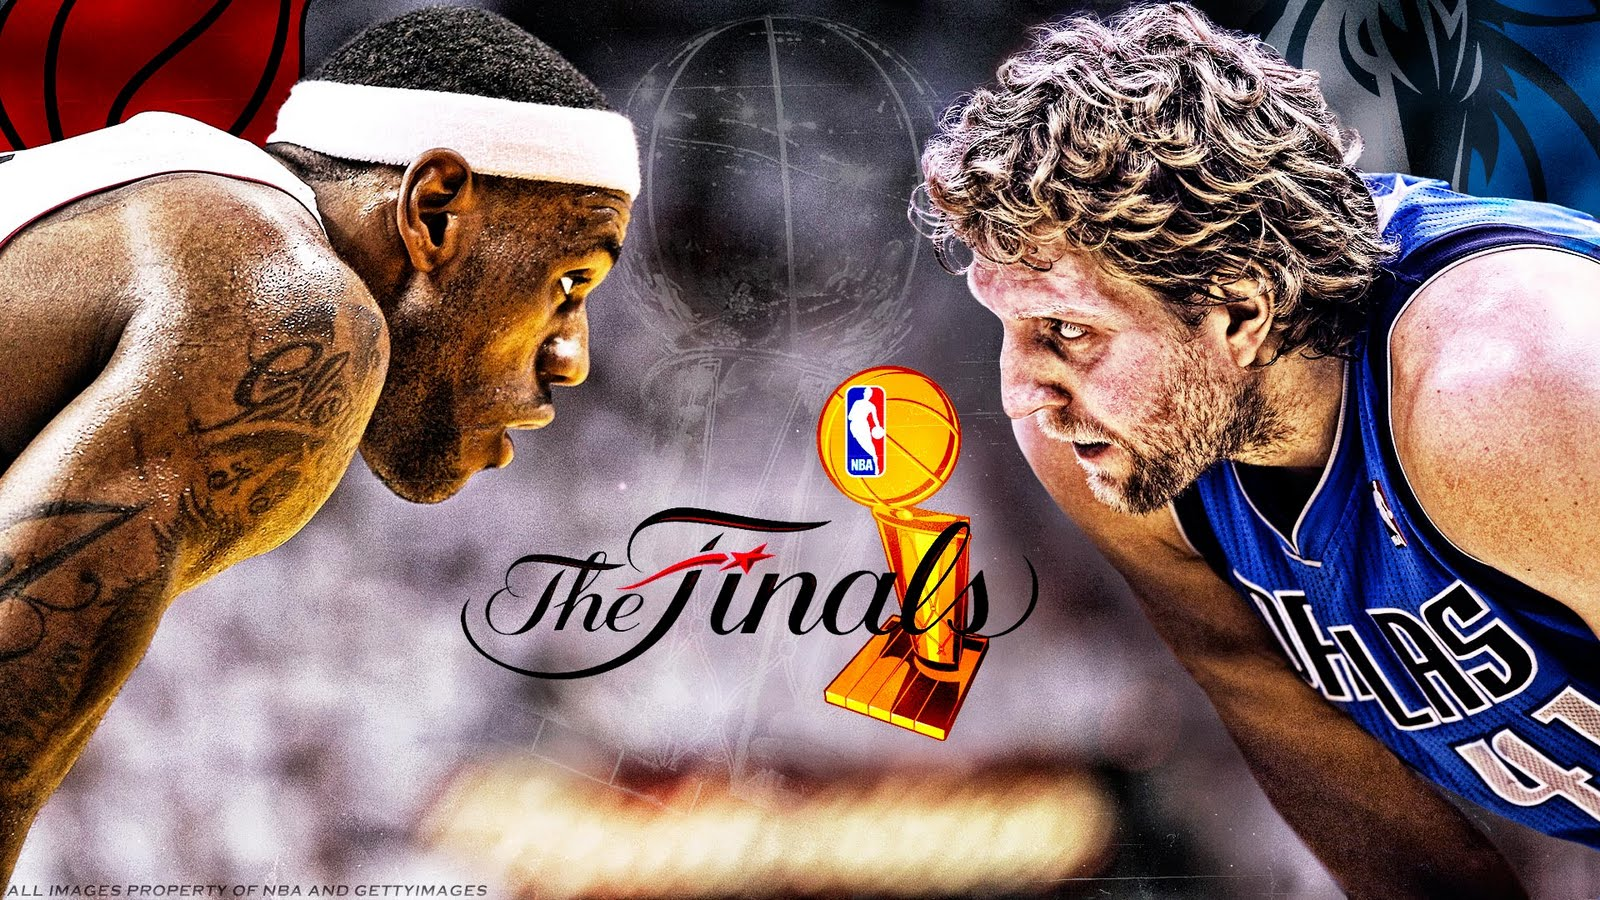 2011 NBA Finals Heat Mavs Widescreen Wallpaper ~ Big Fan ...